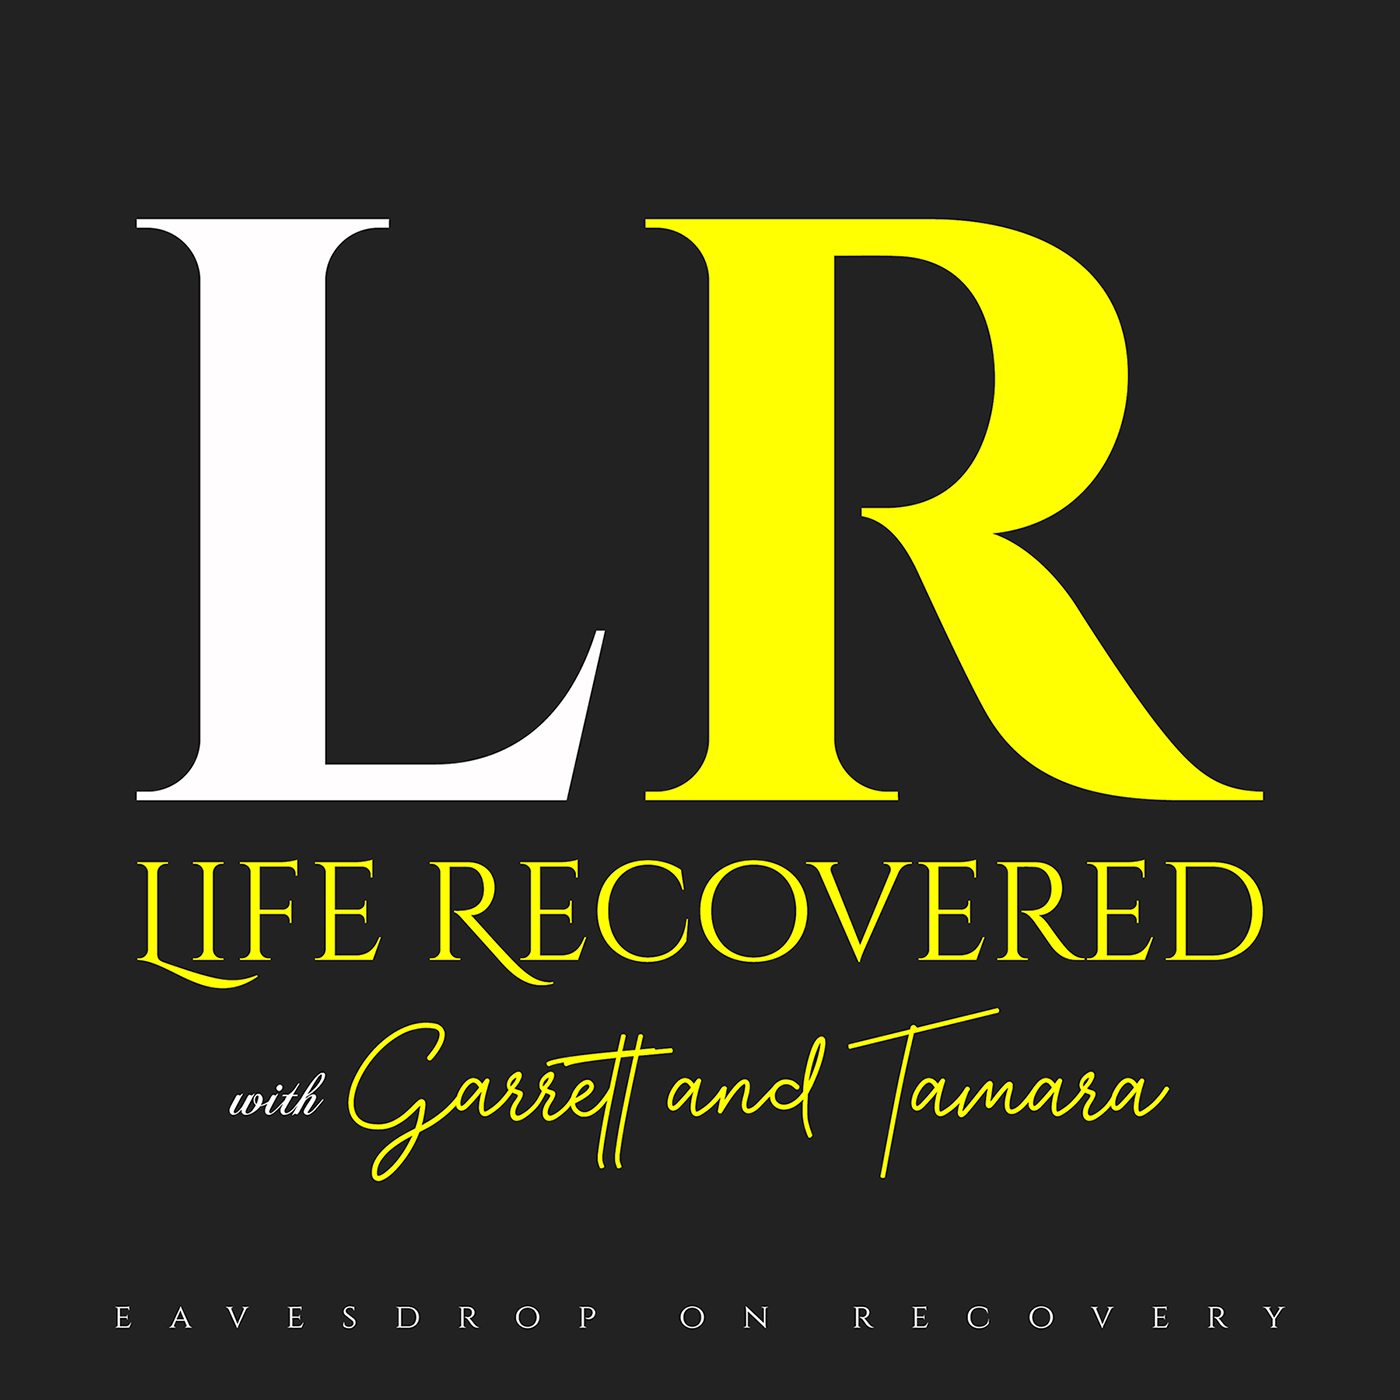 LR 79: The 12 Days of Life Recovered